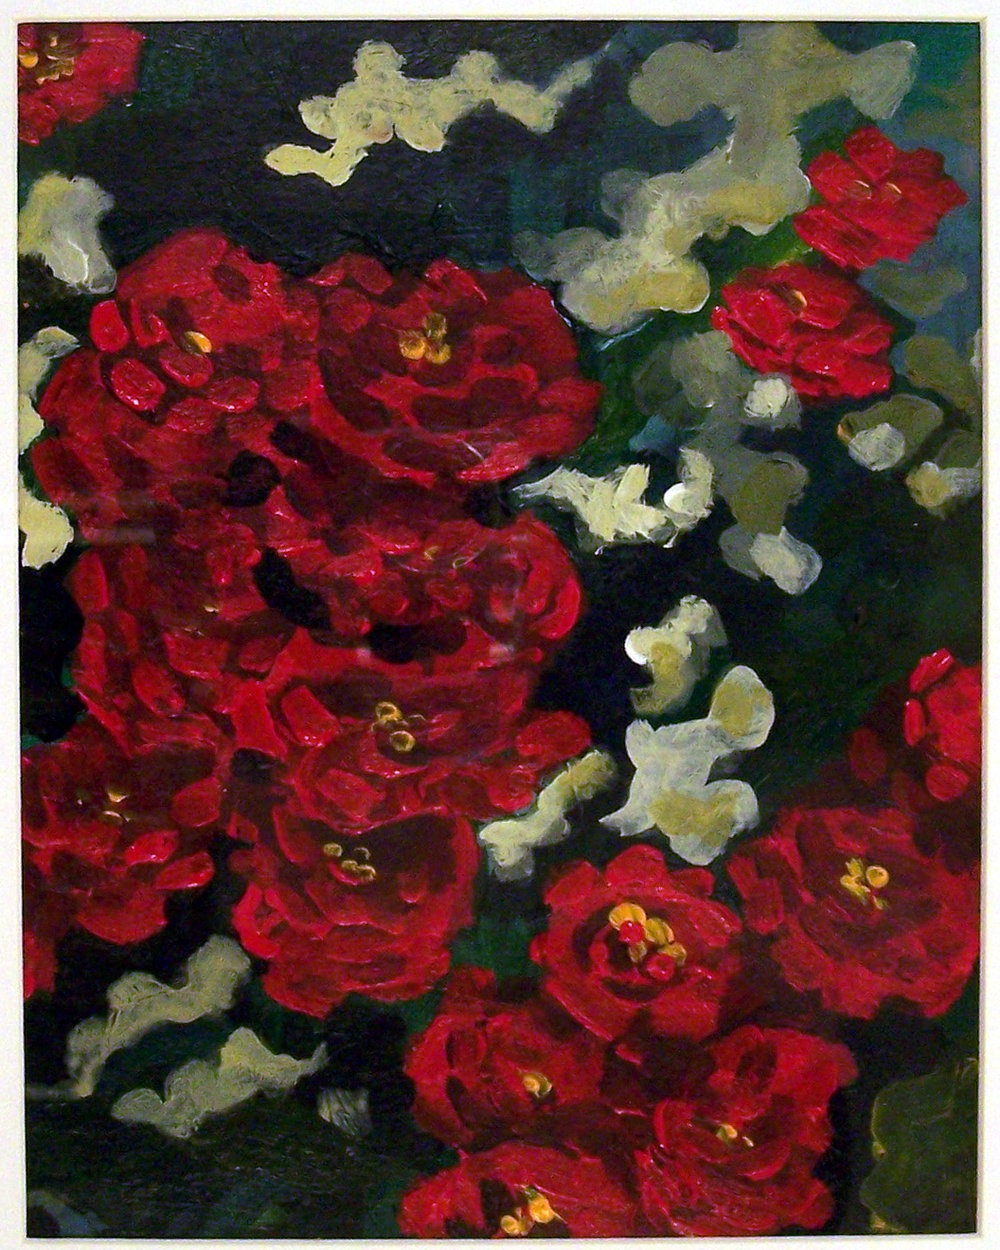 NMarcel-2007-acrylic on paper-red roses.jpg